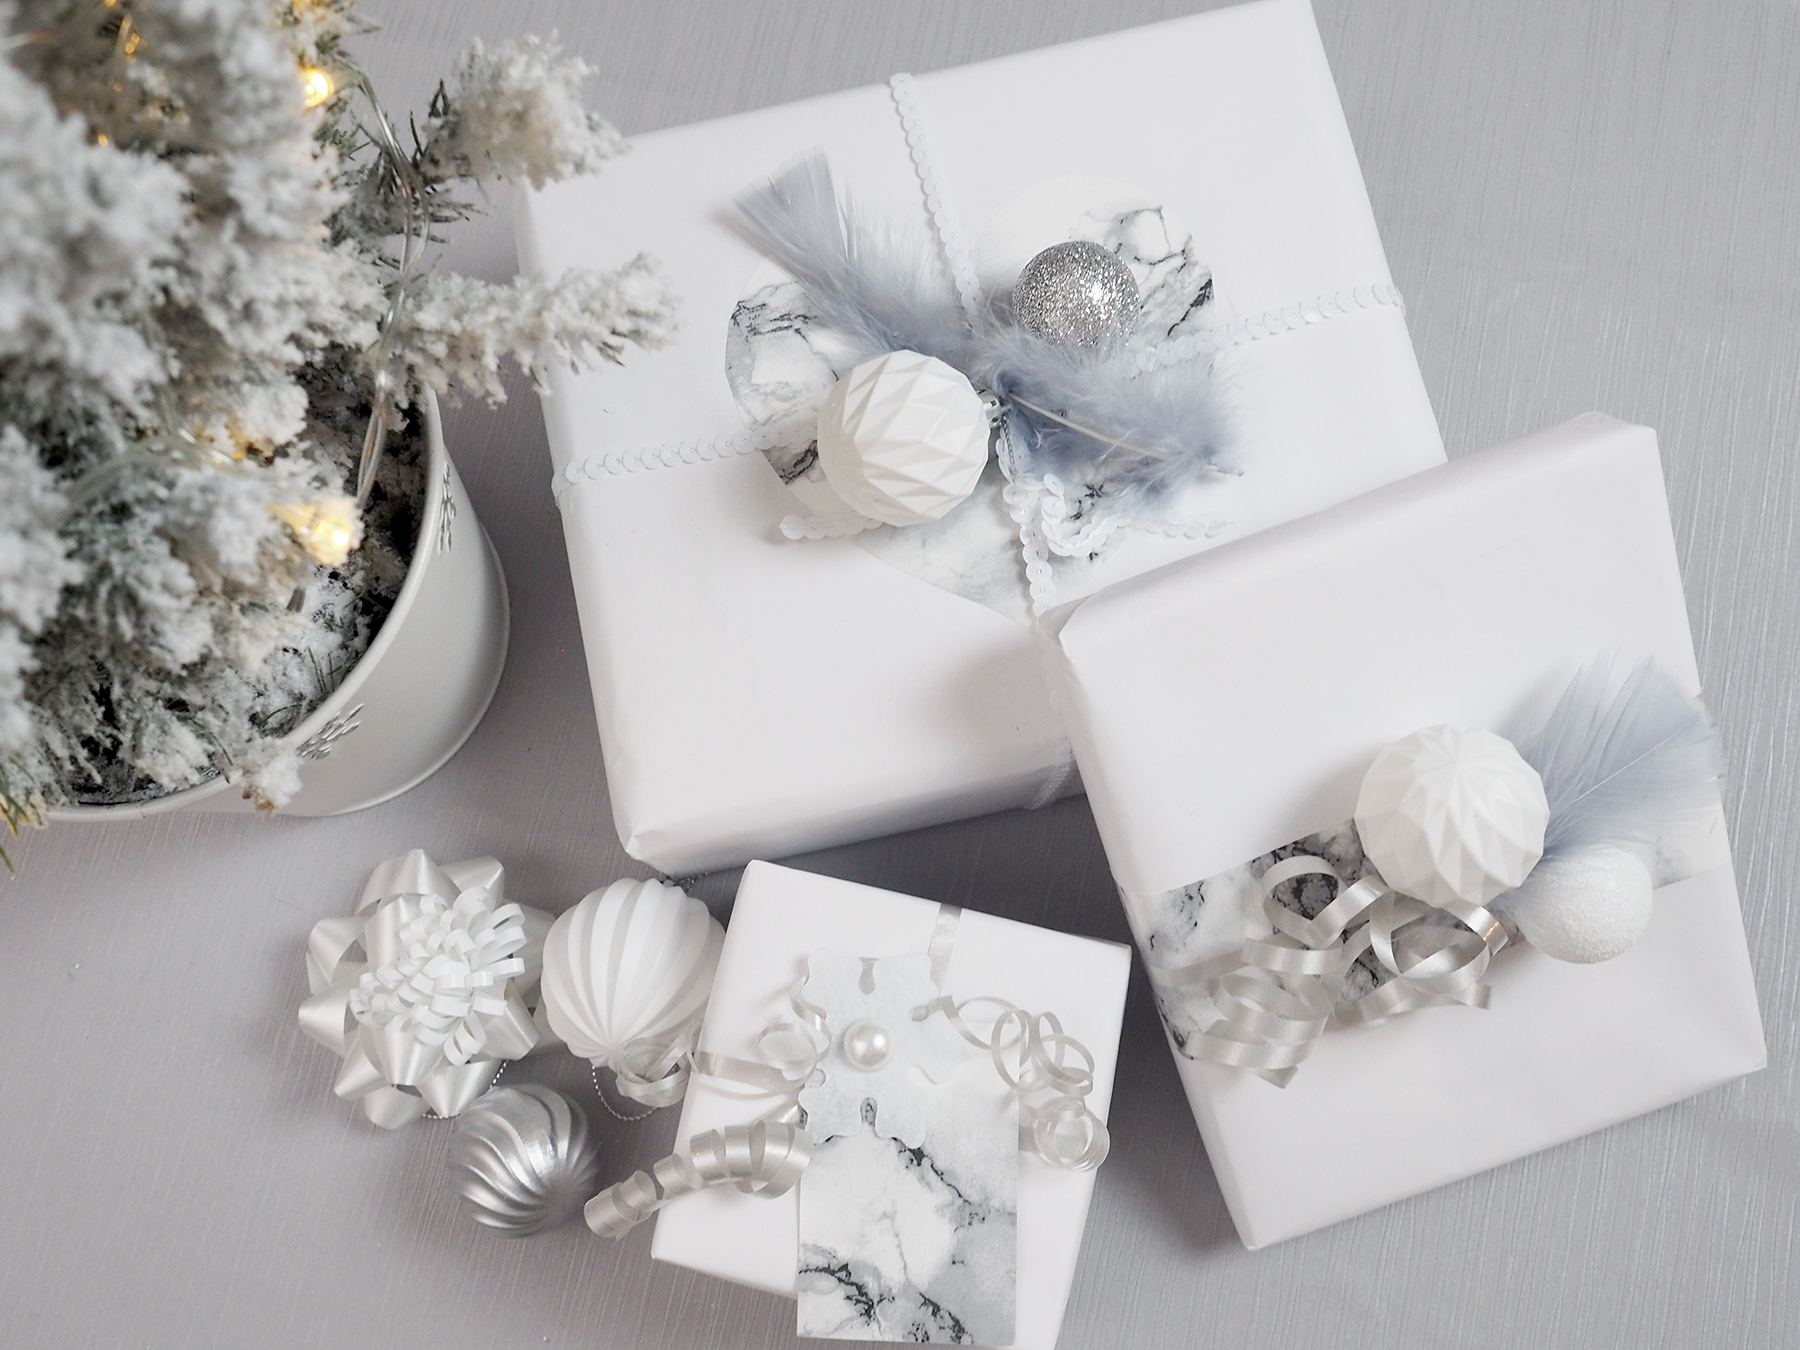 Unique Ways to Wrap Gifts on a Budget